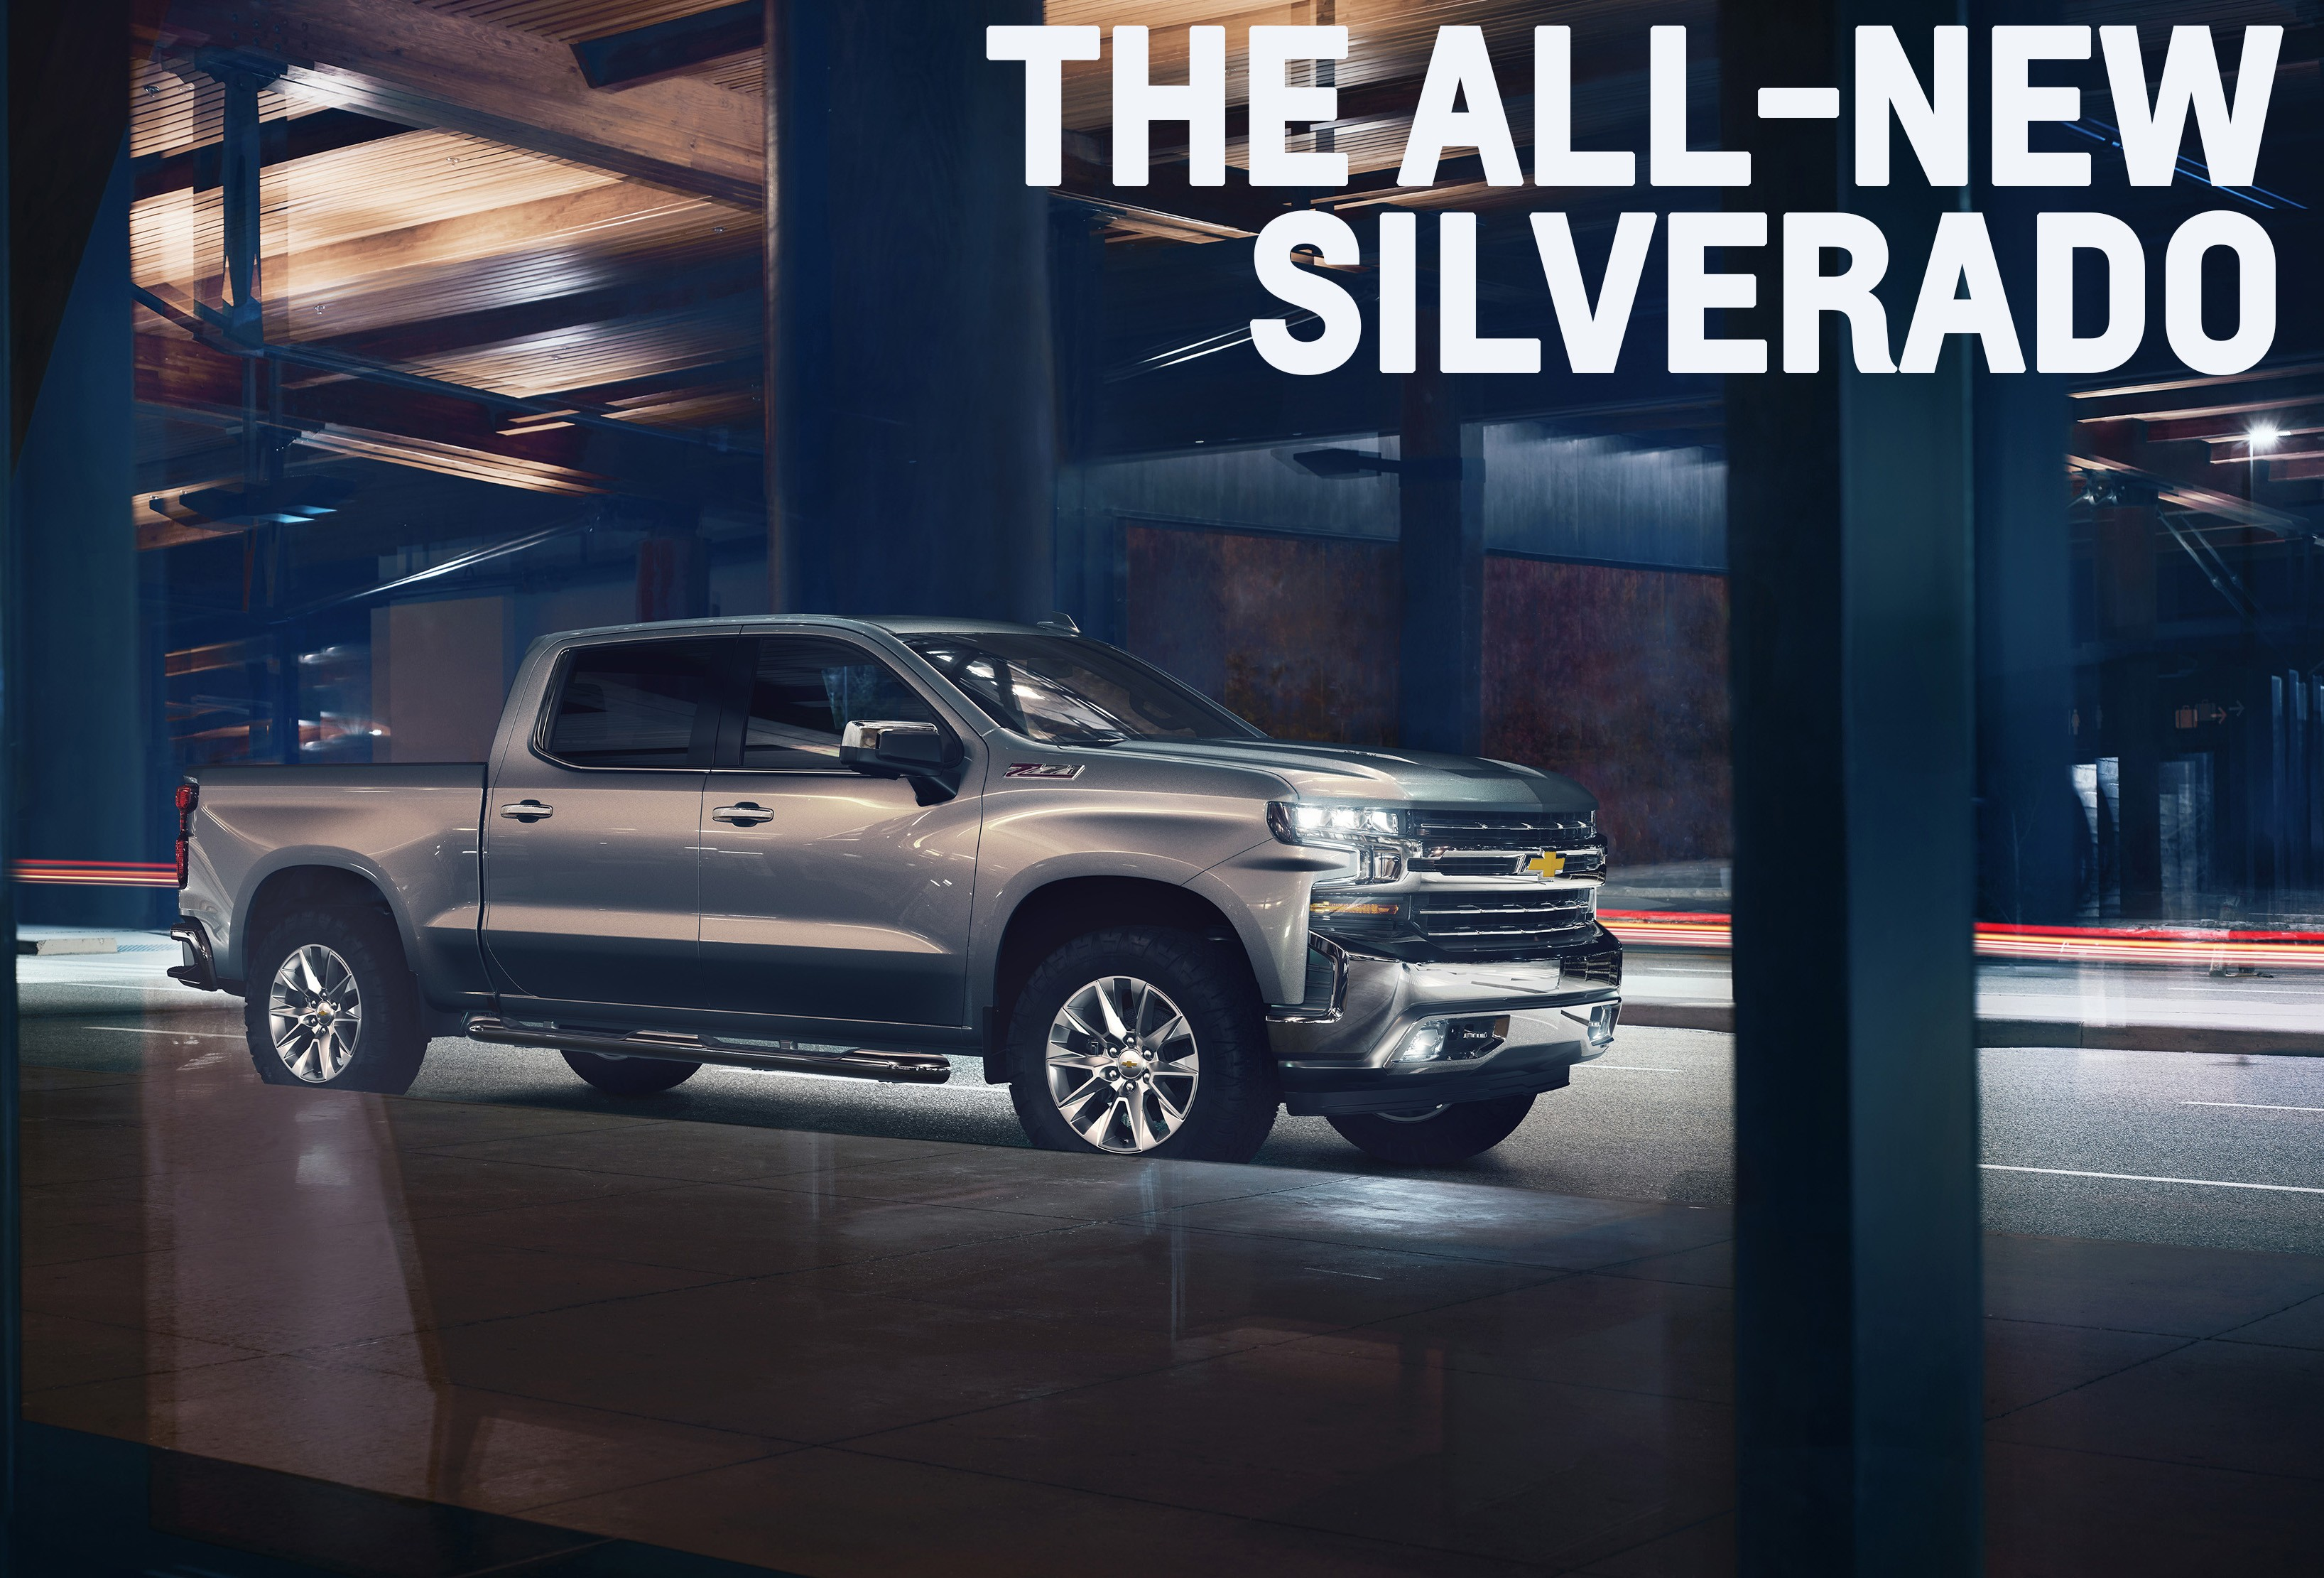 2019 Chevy Silverado Trim Levels All The Details You Need